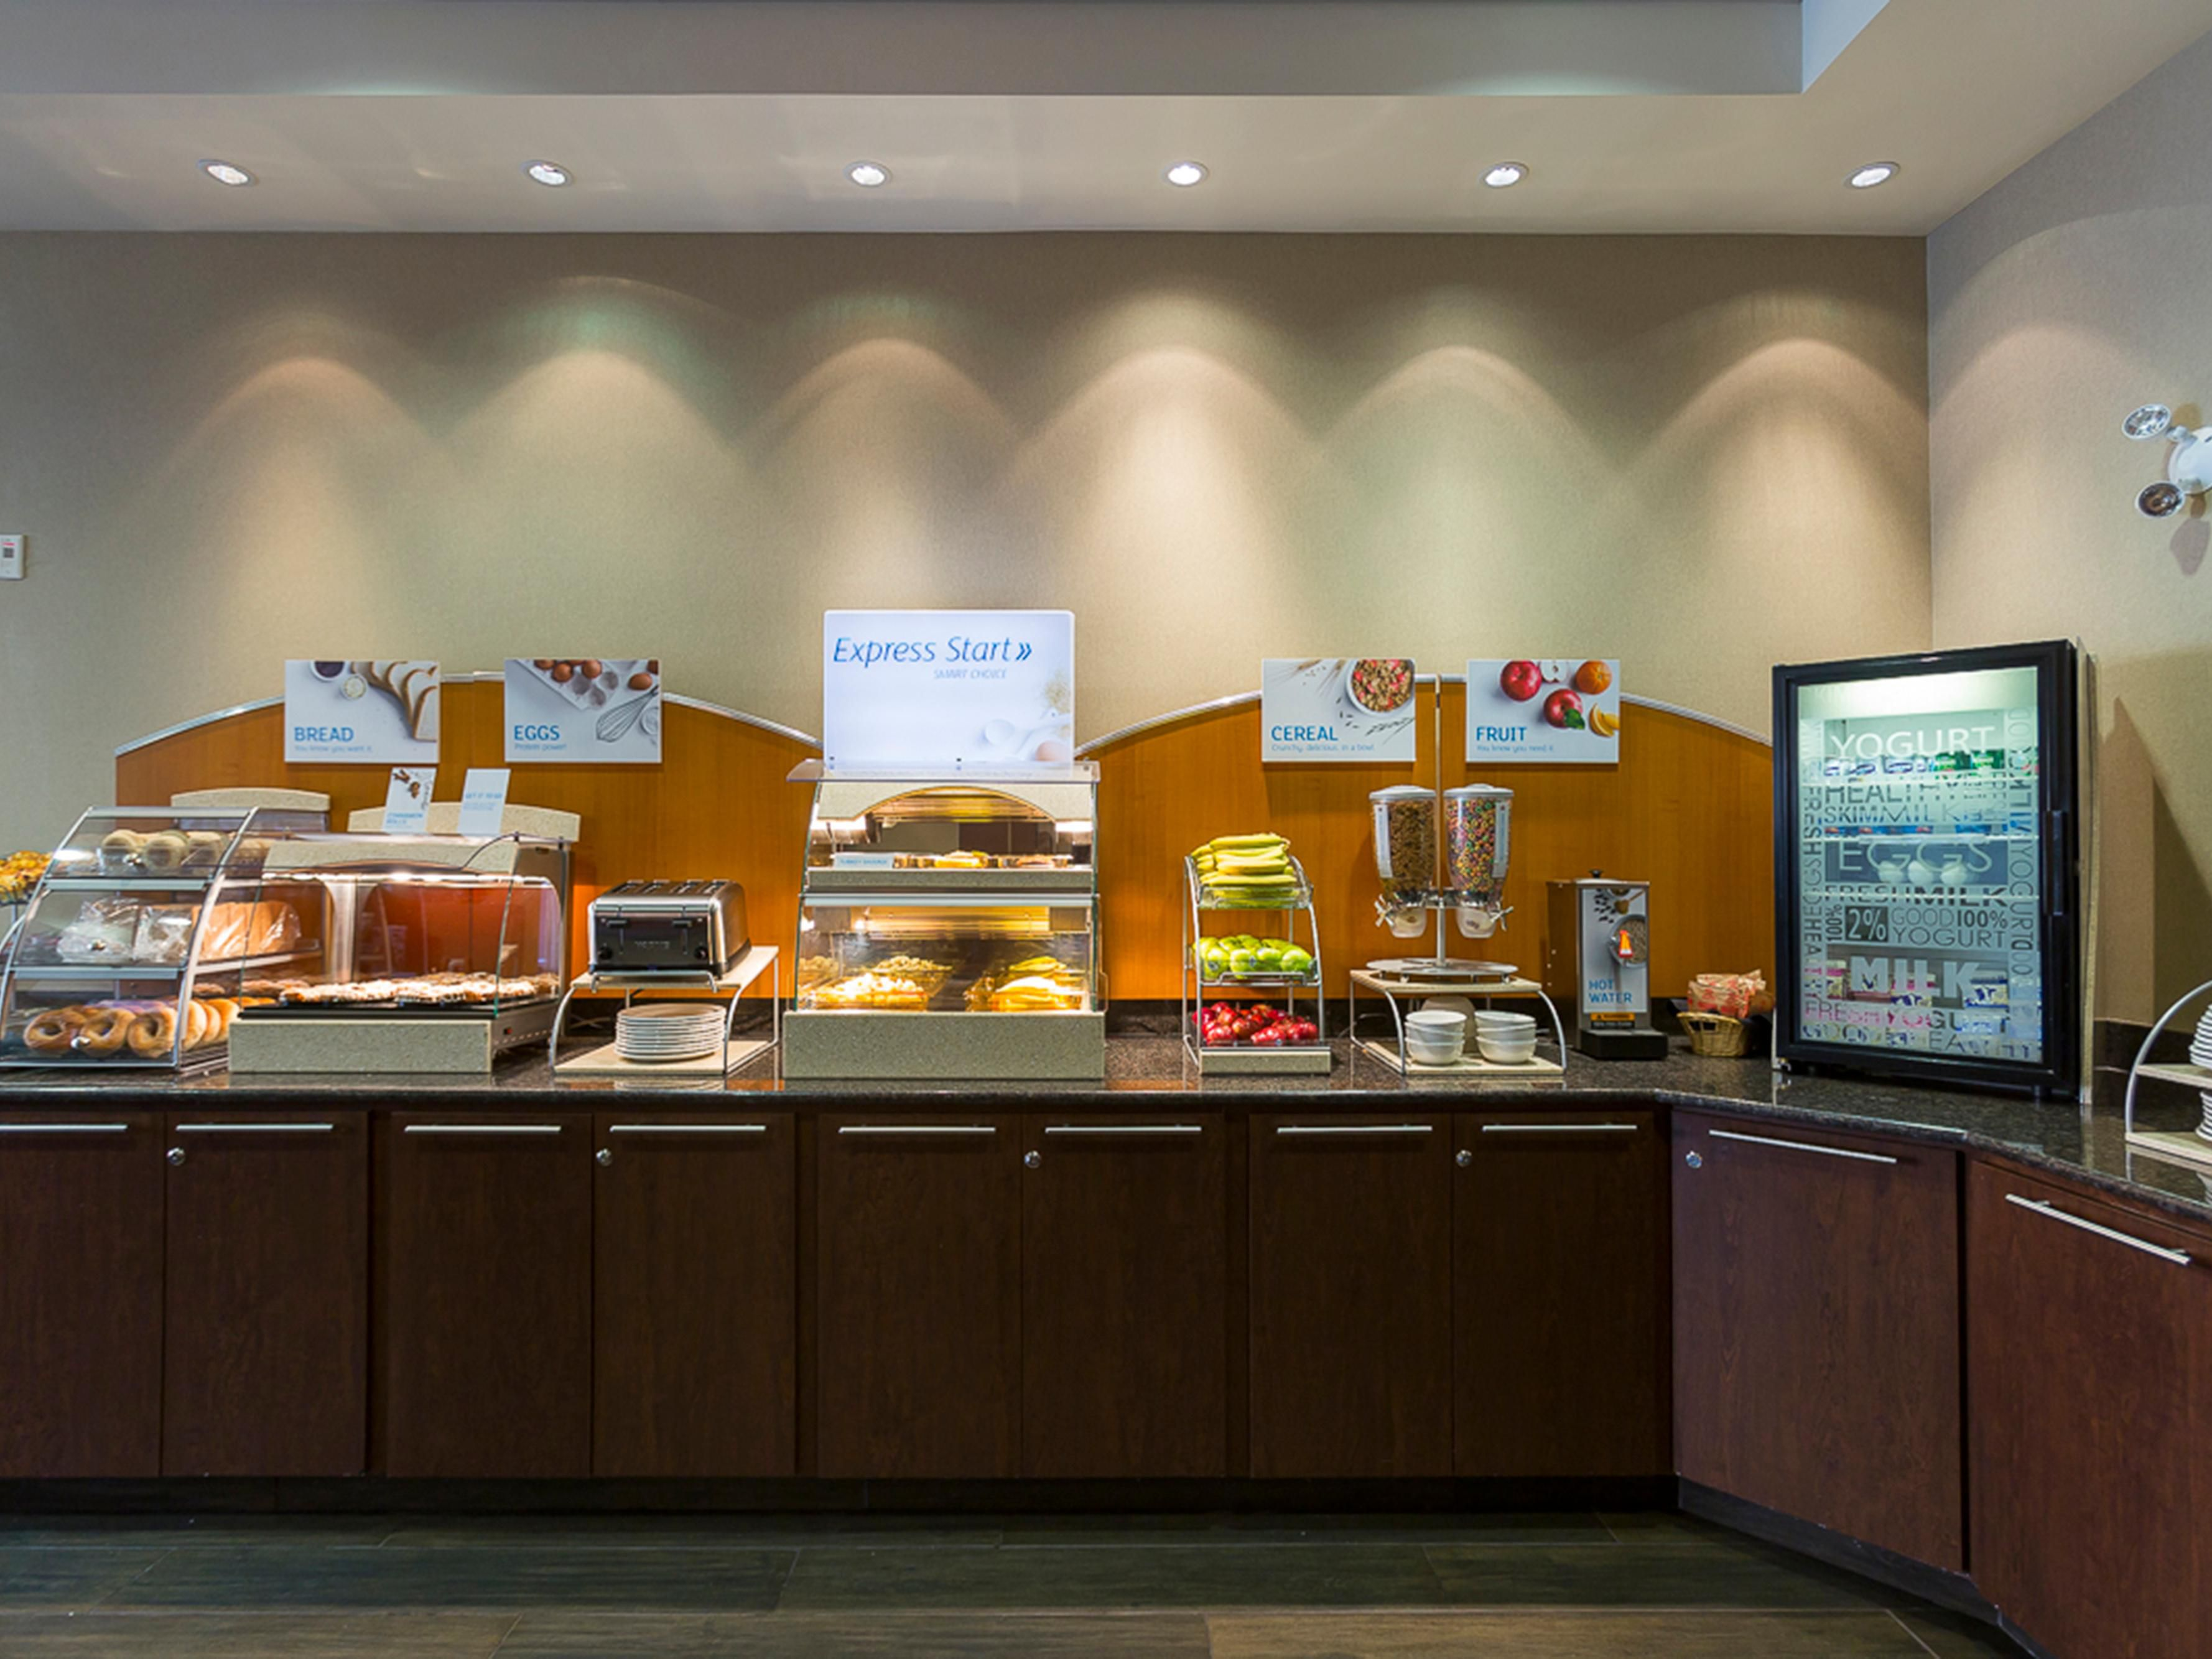 Breakfast Bar, Serving Your Express Start Breakfast.